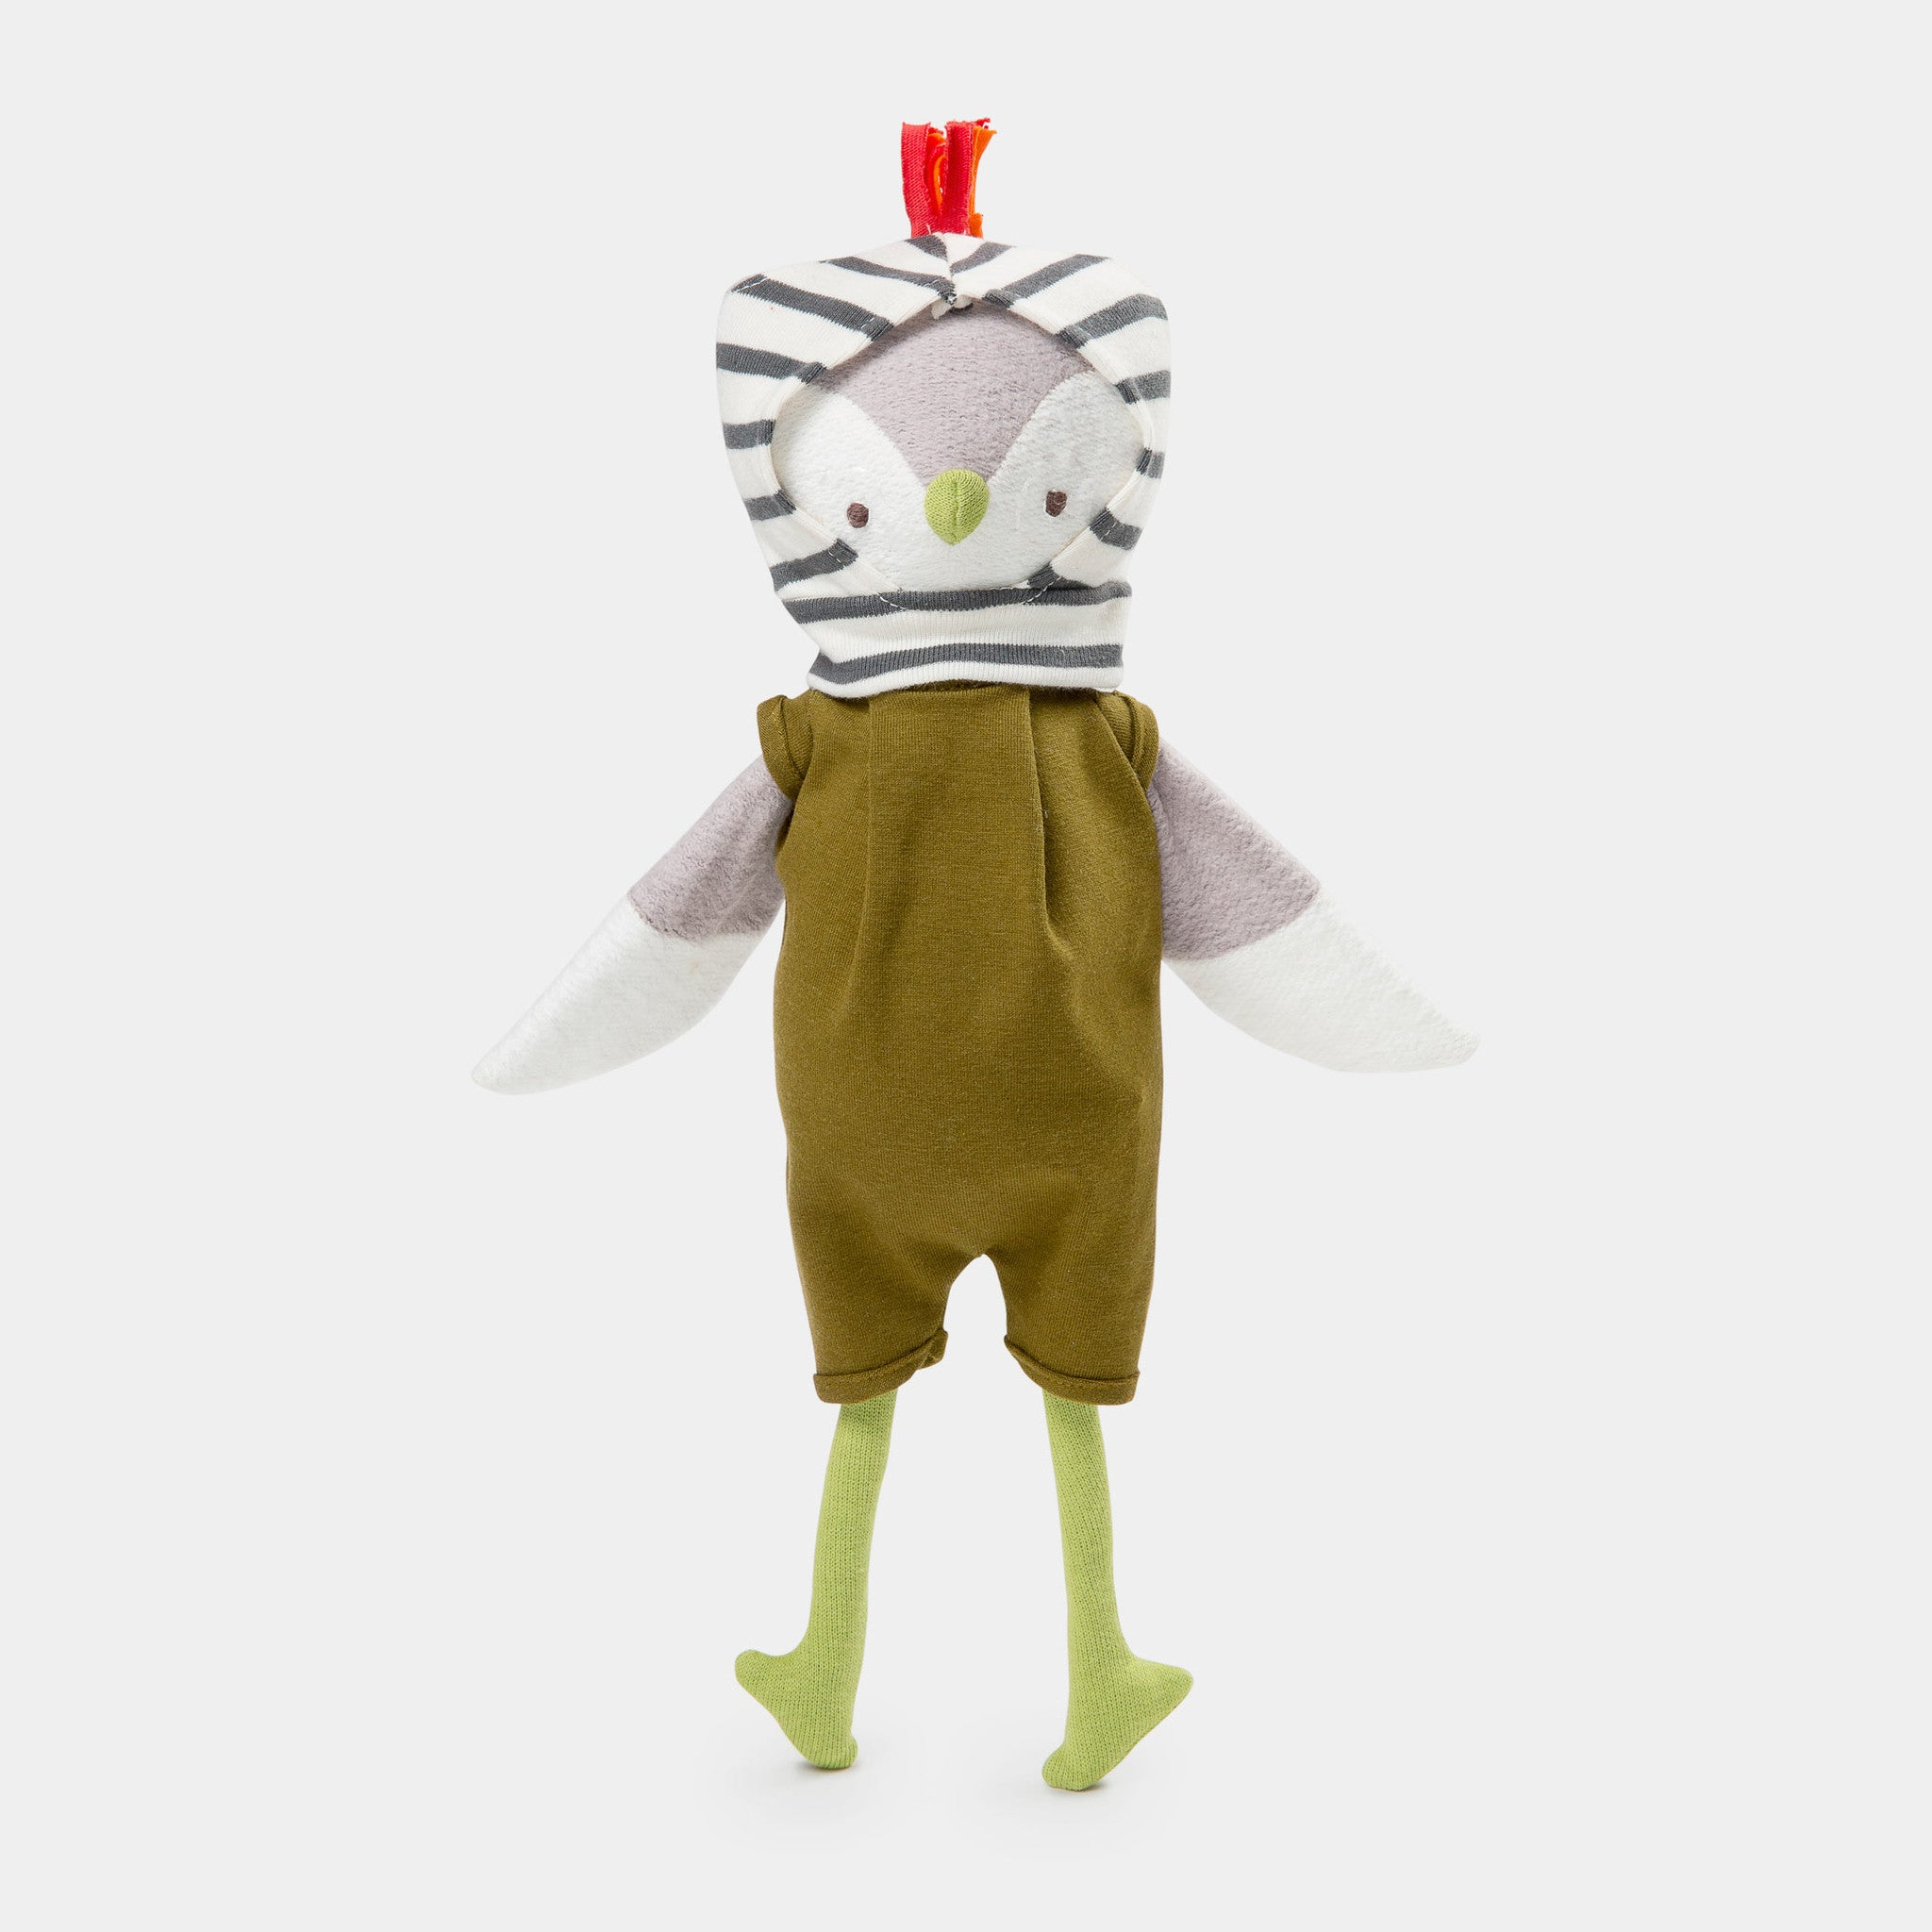 The soft toy, Jeremy Owl - a sustainable organic cotton cuddly toy owl by Hazel Village